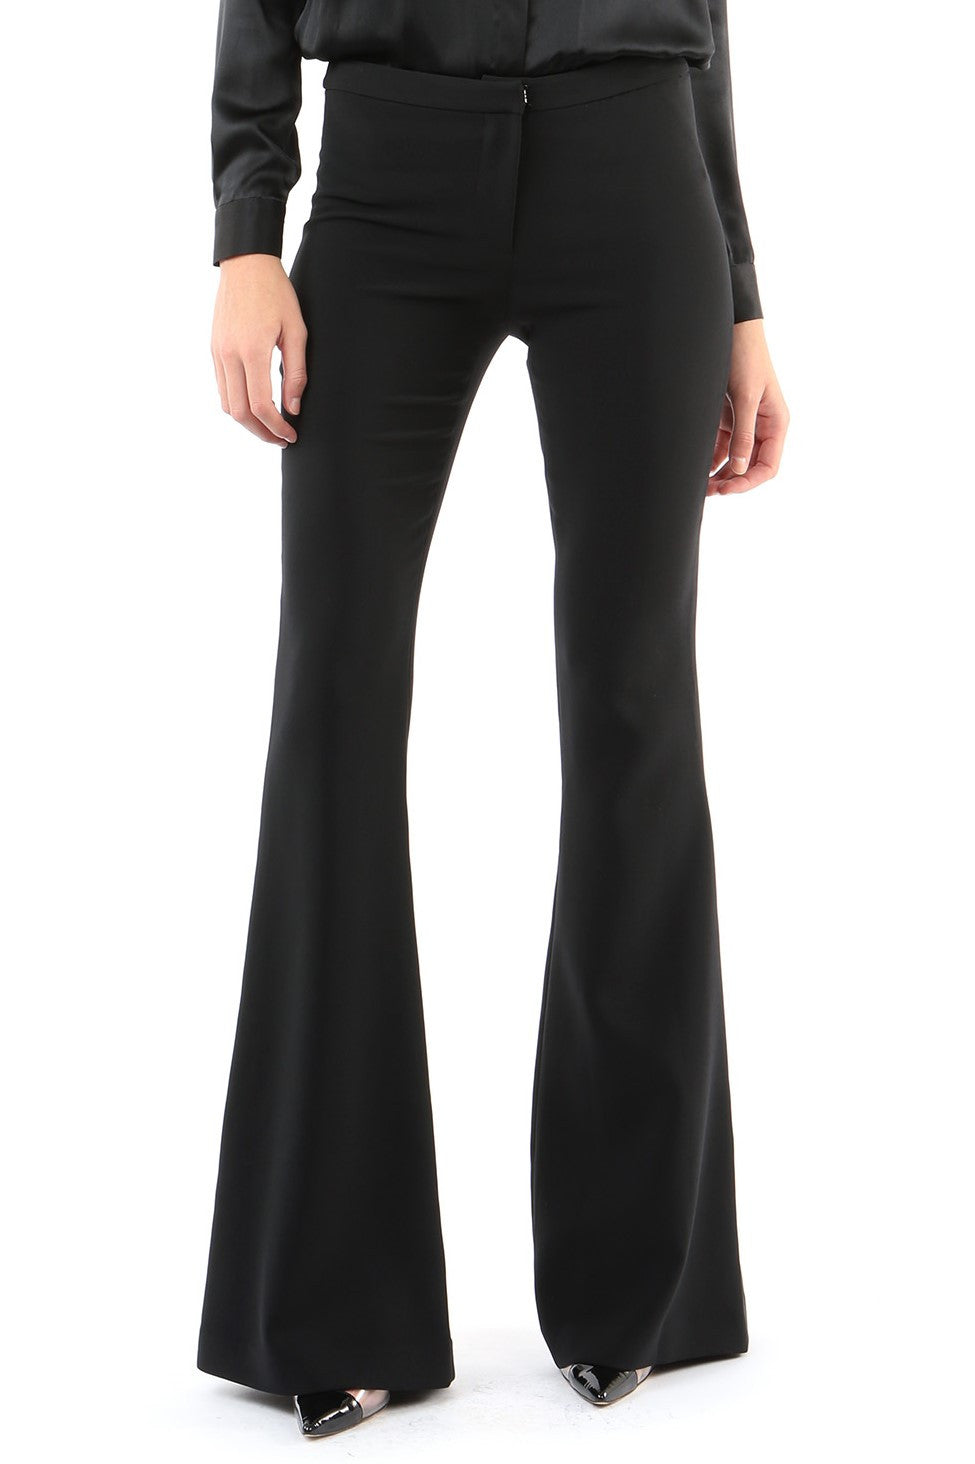 Jay Godfrey Black Flare Pants - Front View